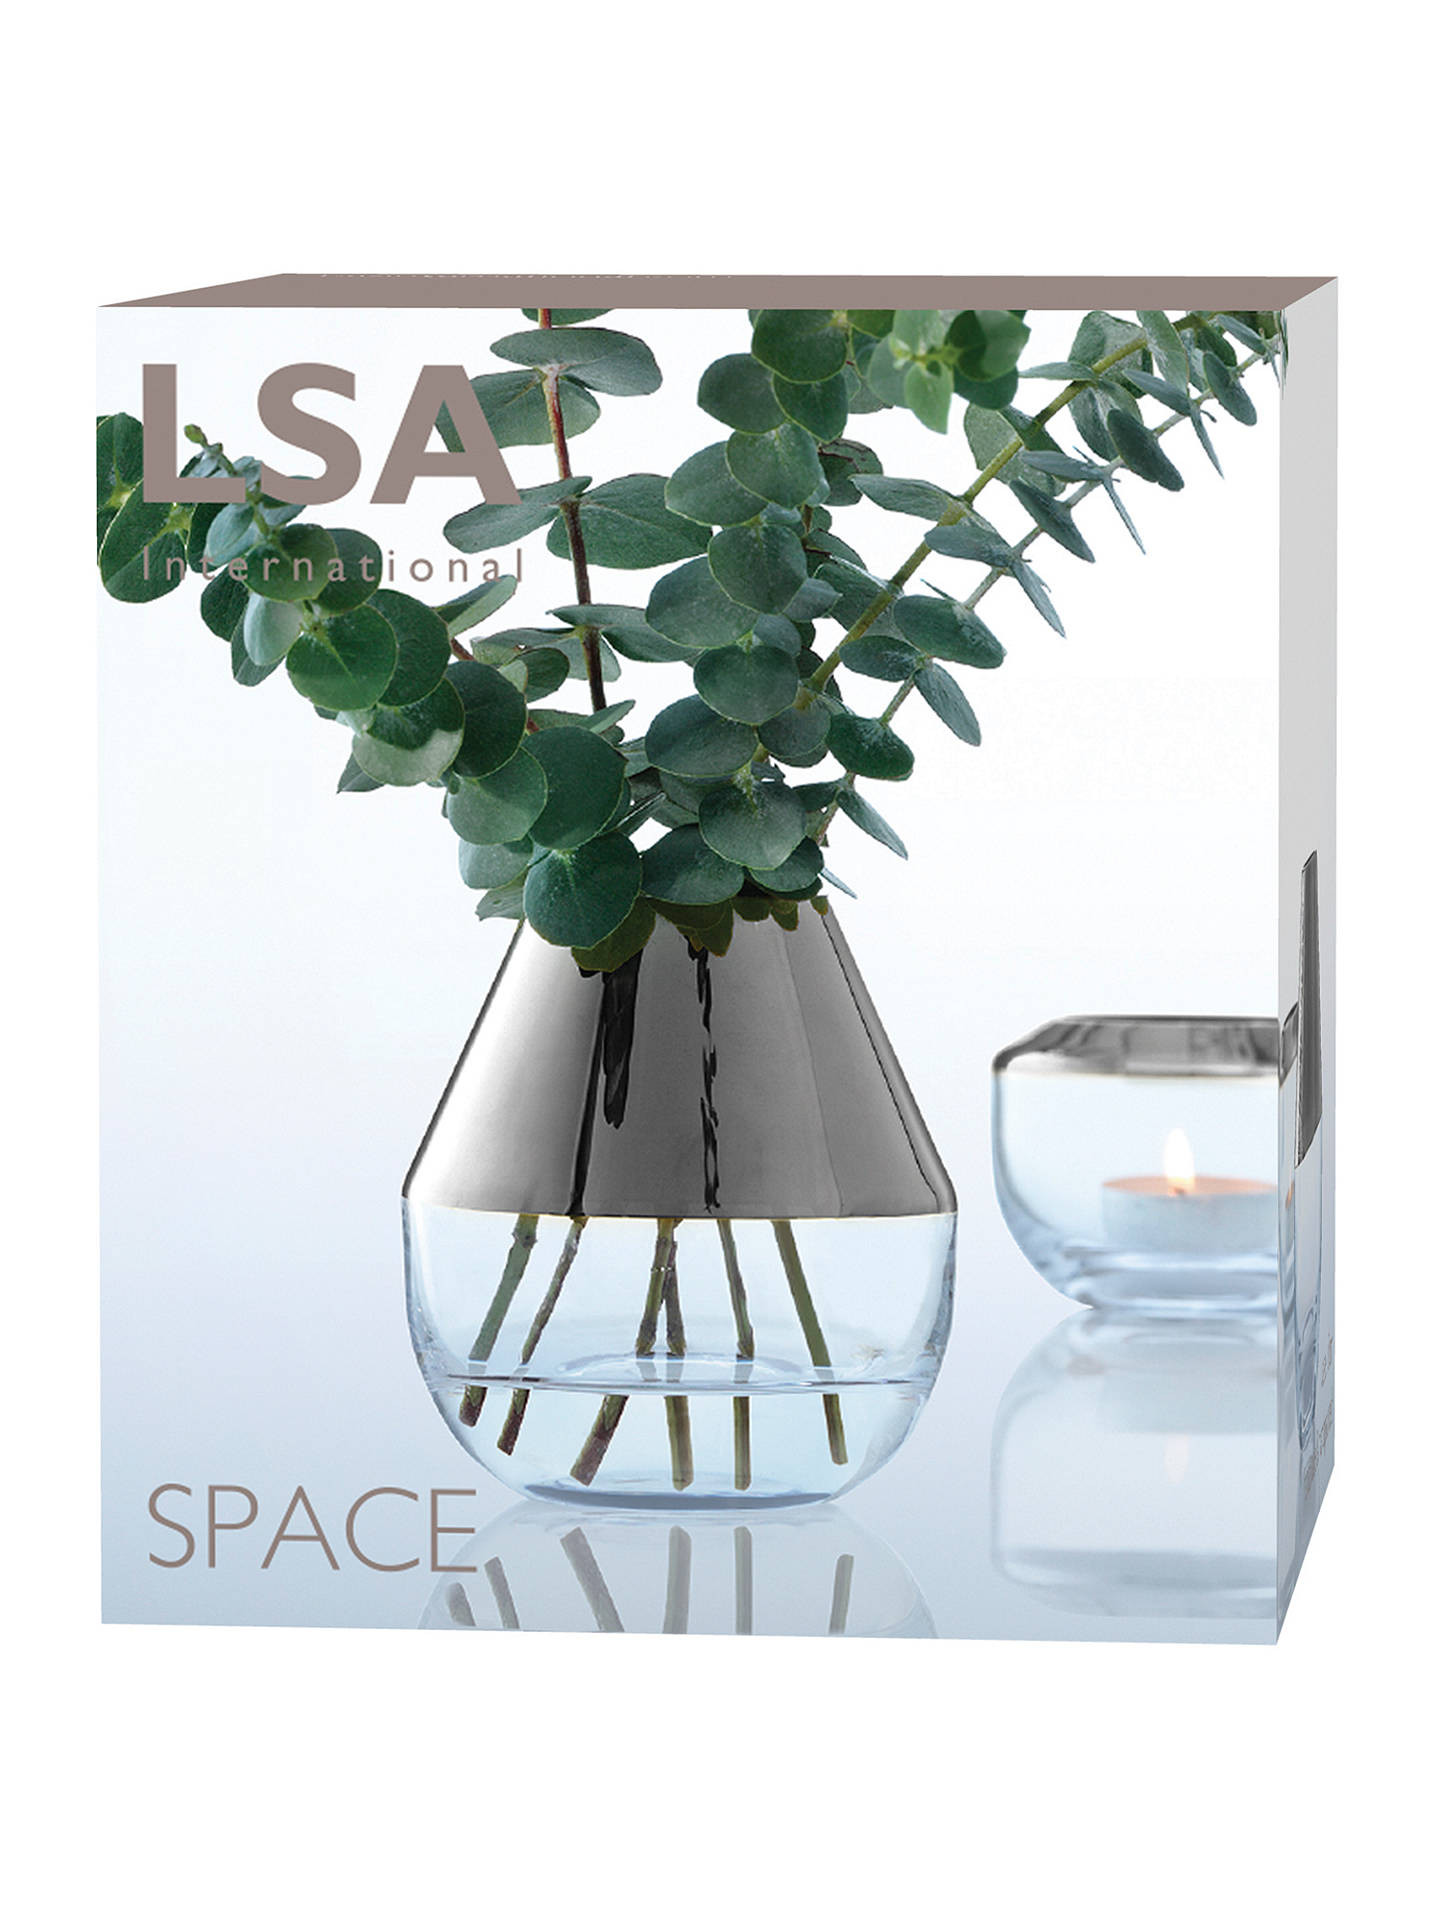 hummingbird vase of bud vases small glass vases with strong suction cups for t regarding buylsa international space bud vase platinum h10cm online at johnlewis com